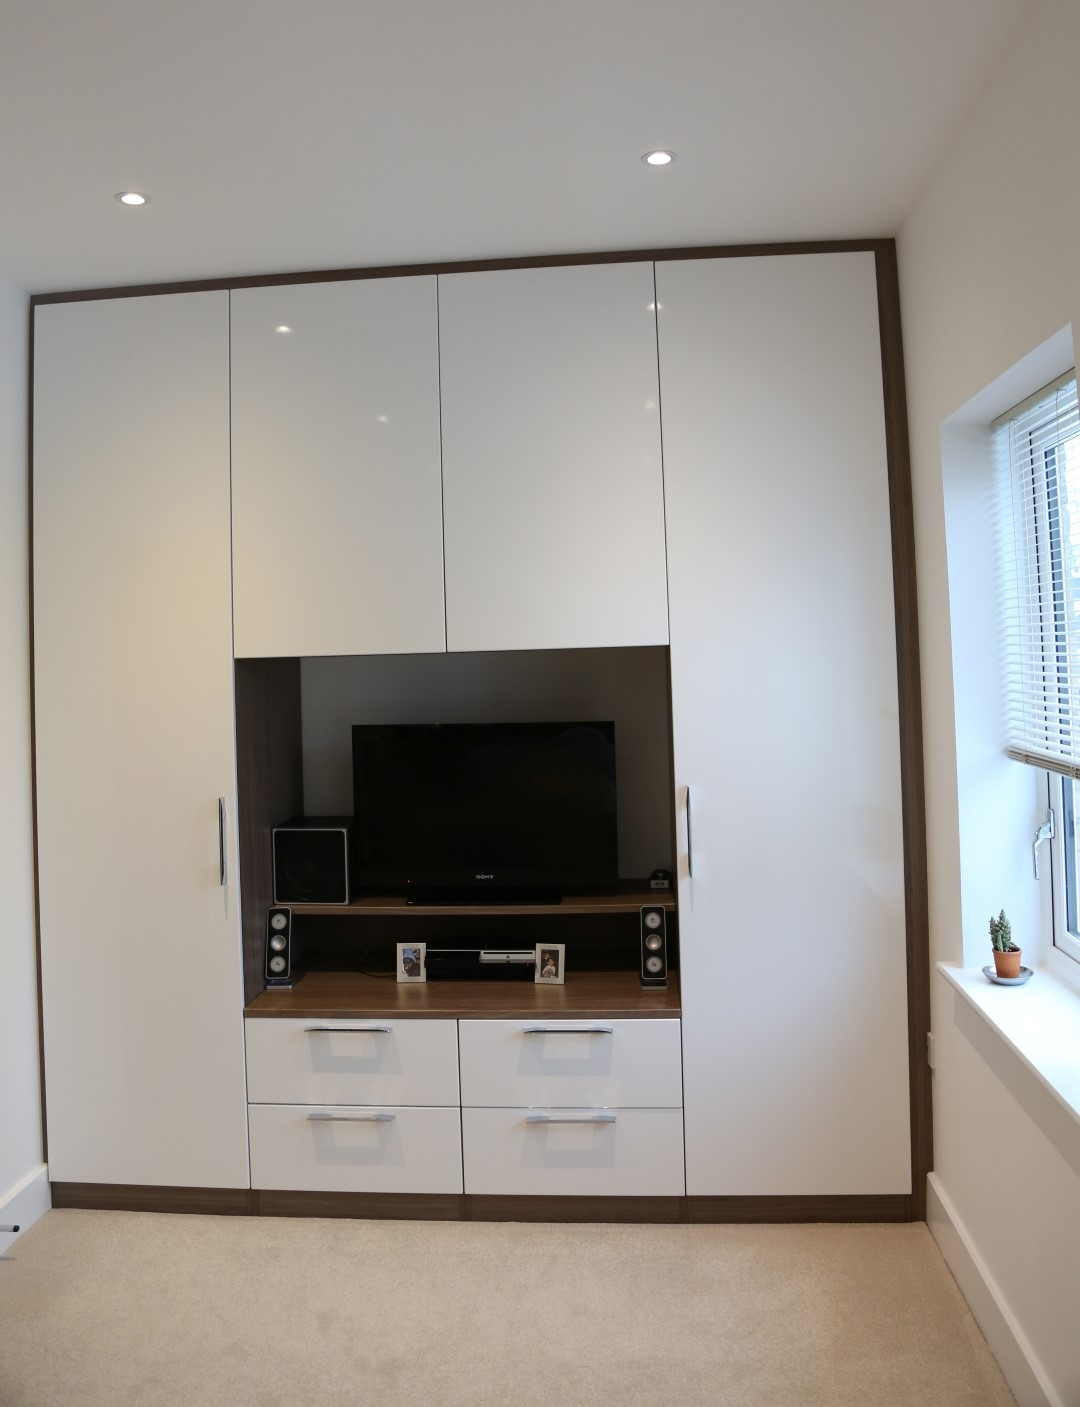 15 Photos Built In Wardrobes With Tv Space Wardrobe Ideas